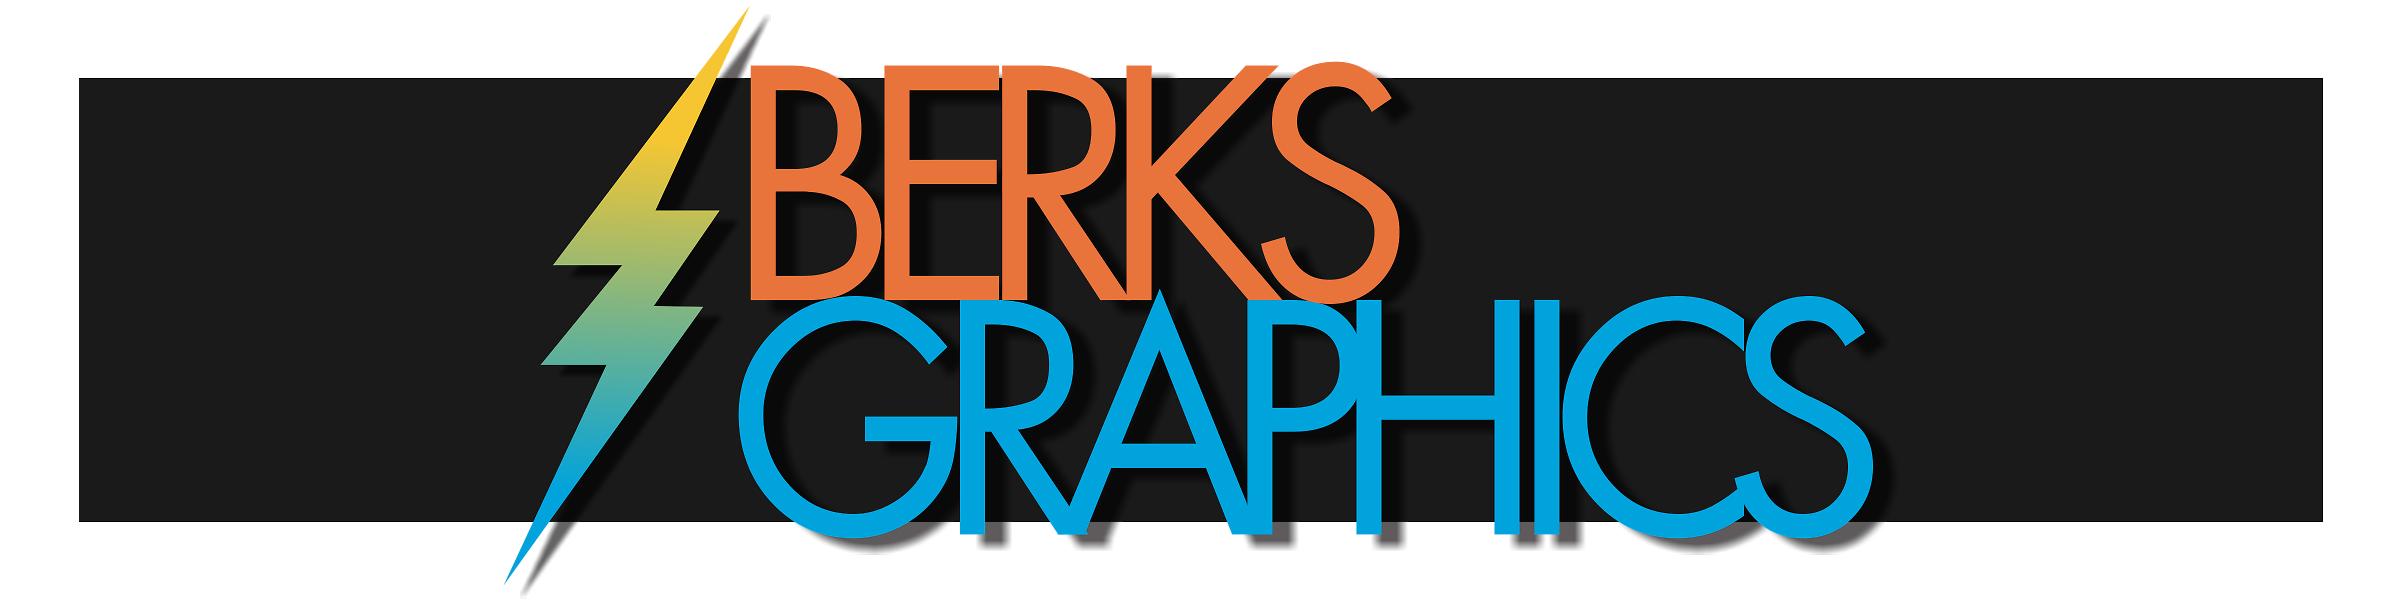 Berksgraphics Shop Redbubble